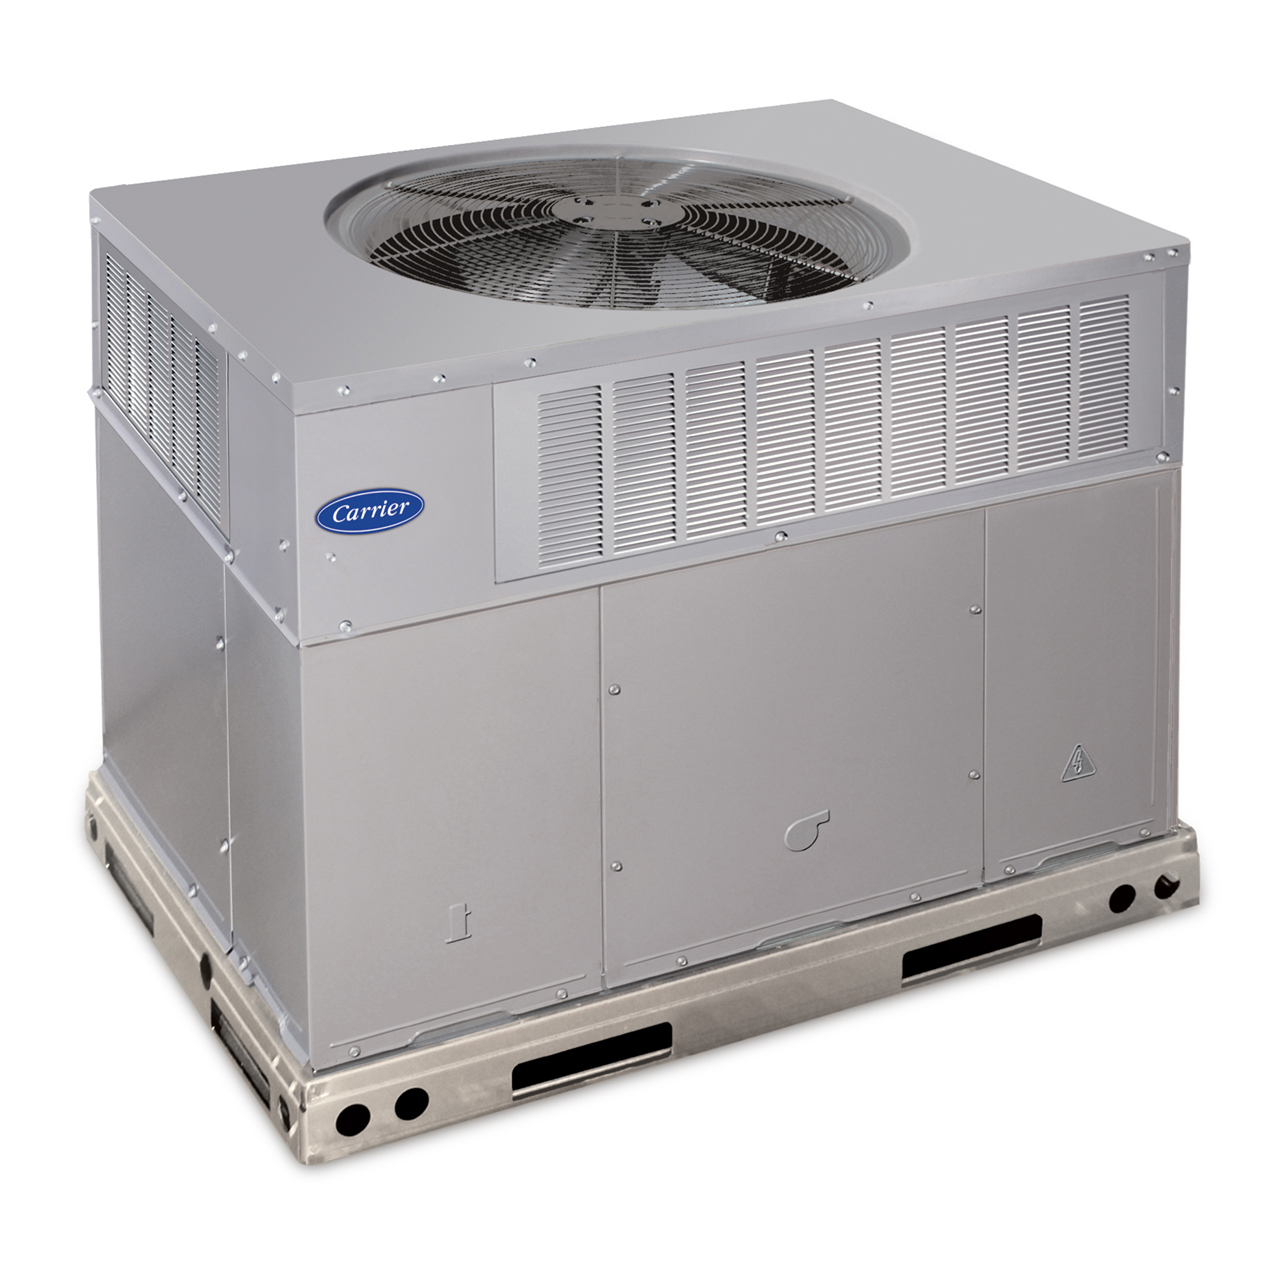 carrier-50vl-a-packaged-air-conditioner-system